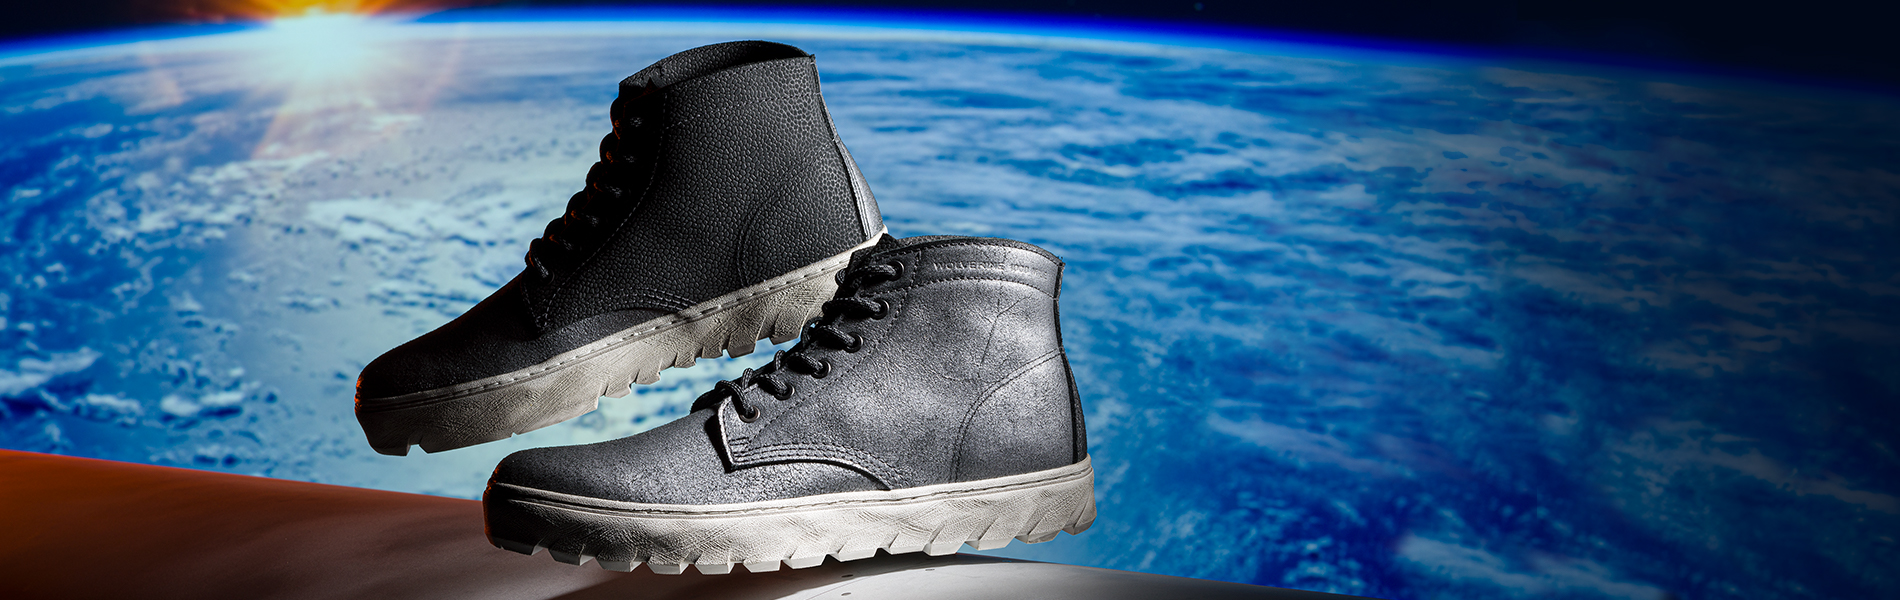 High profile UFO sneakers on a lunaresque background.